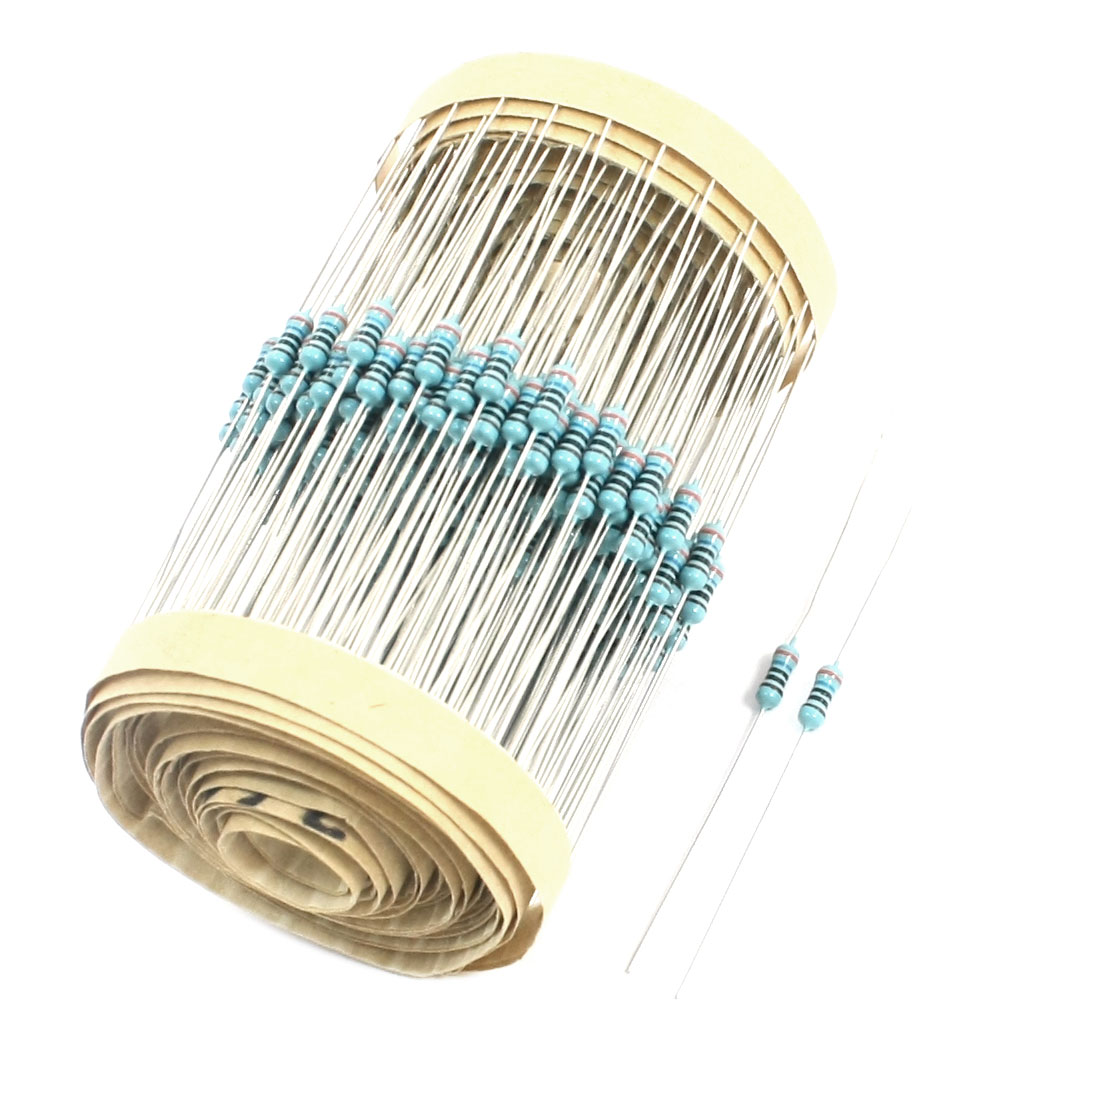 300PCS 0.25W 360 Ohm 1% Tolerance 6x2mm Axial Lead Metal Film Resistor